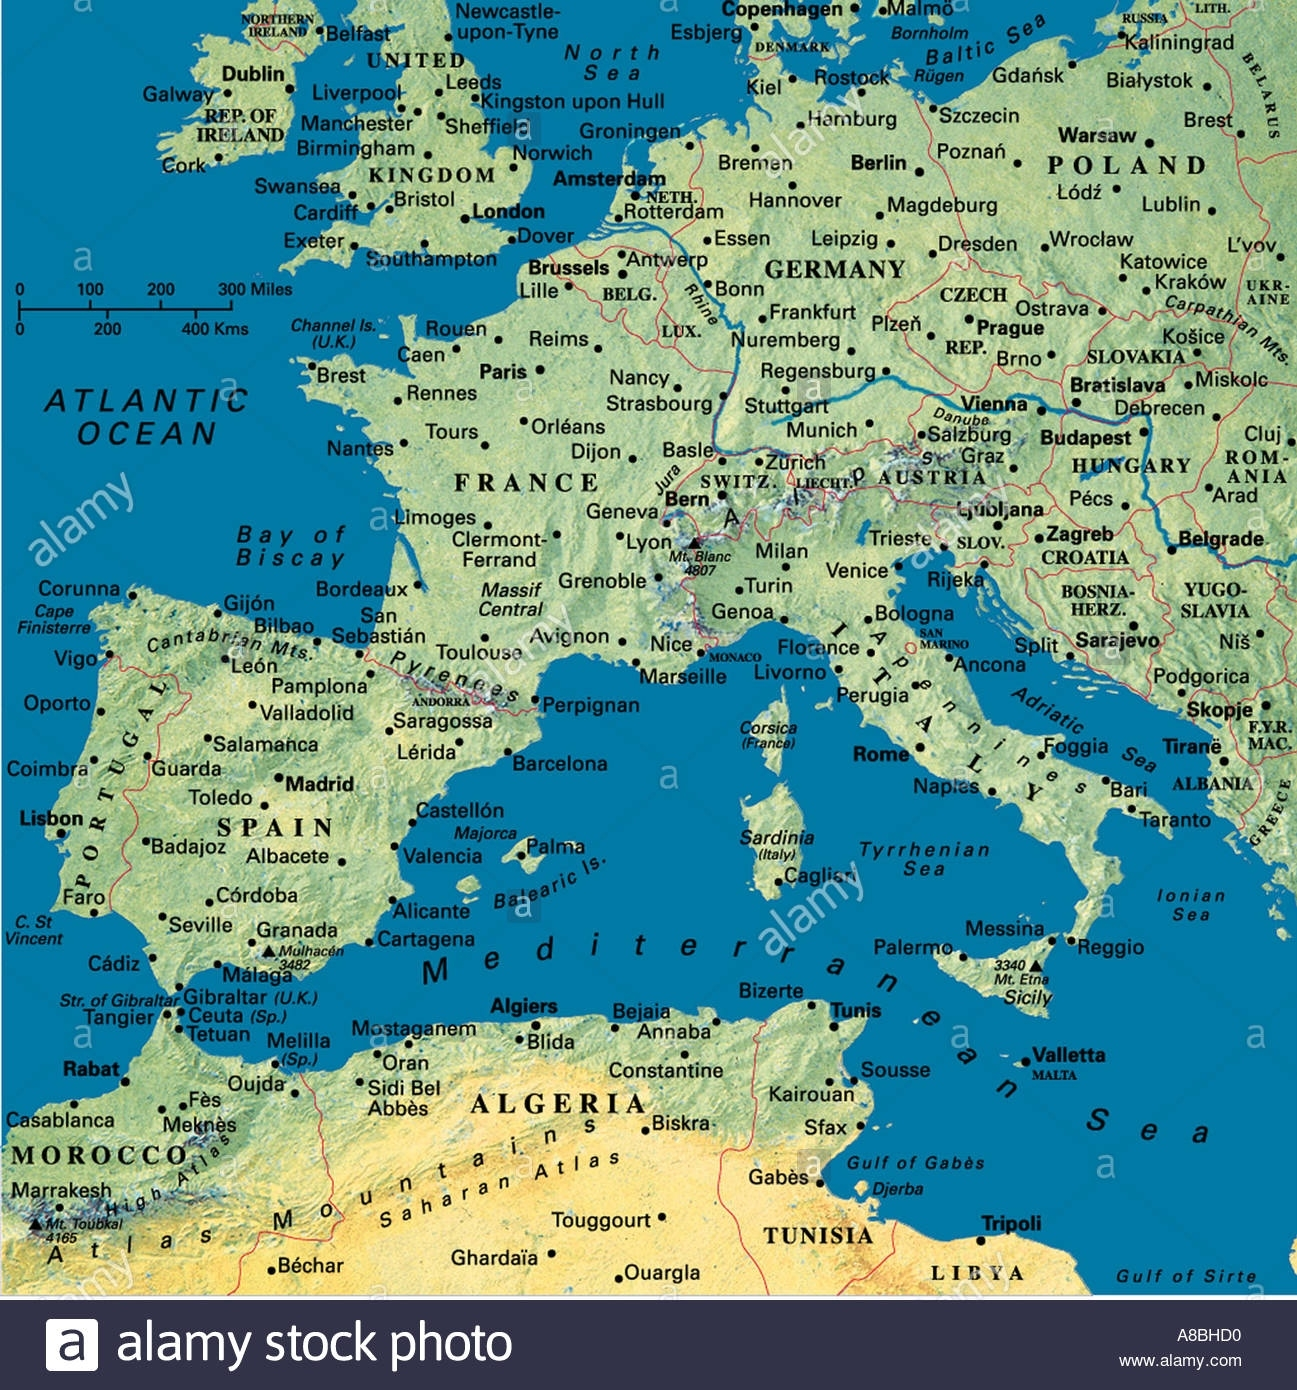 Map Maps Europe Algeria Tunesia North Africa Spain Portugal France intended for Map Of Germany And France